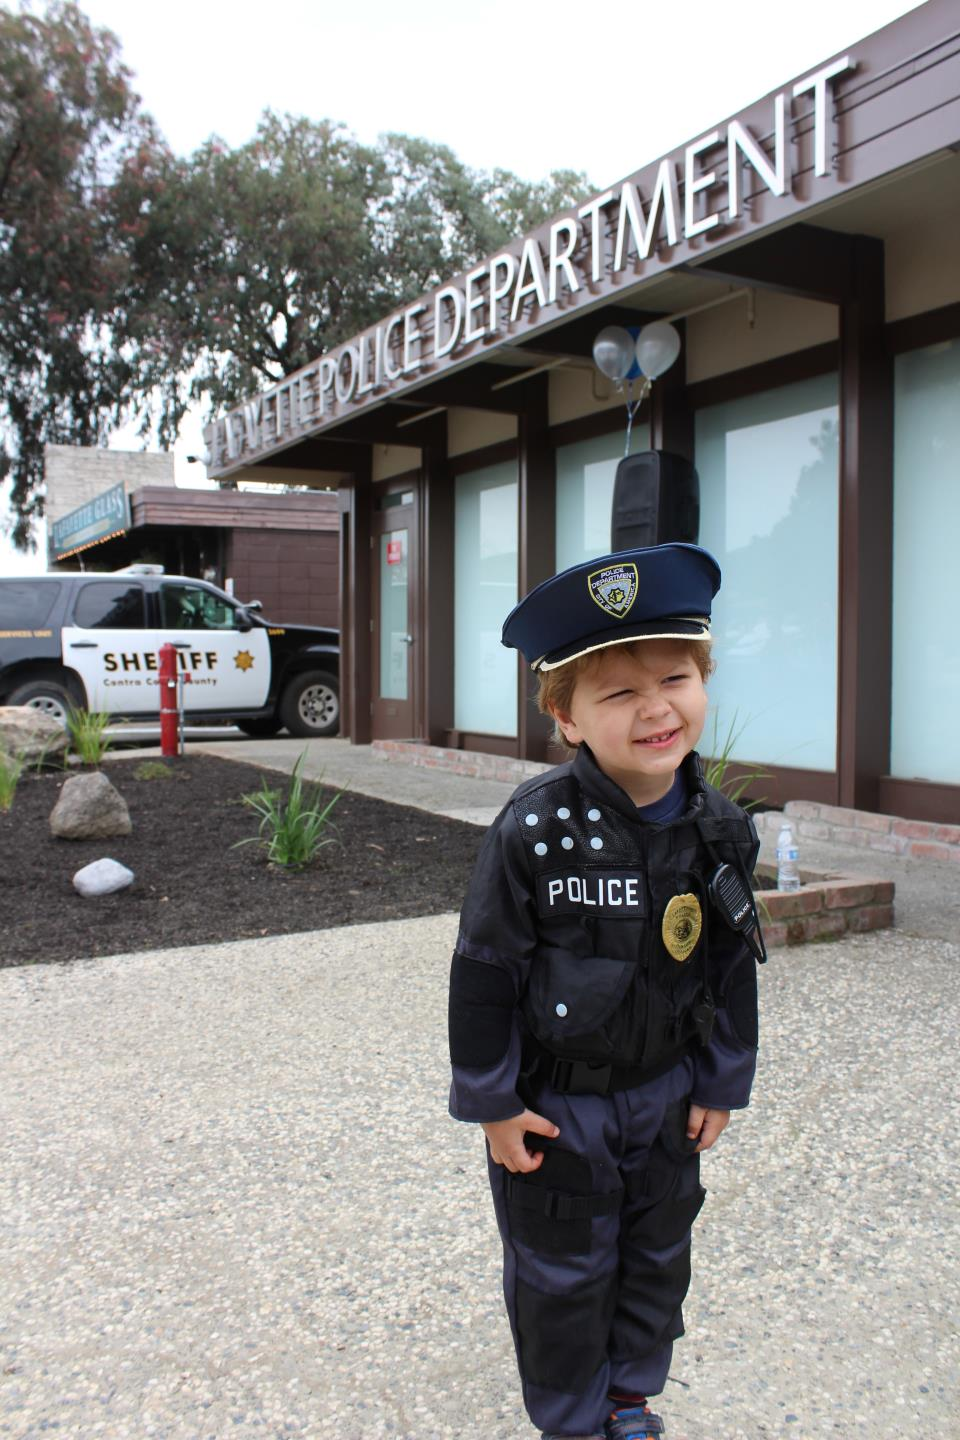 Next Police Chief Local News Roundup For Lafayette California